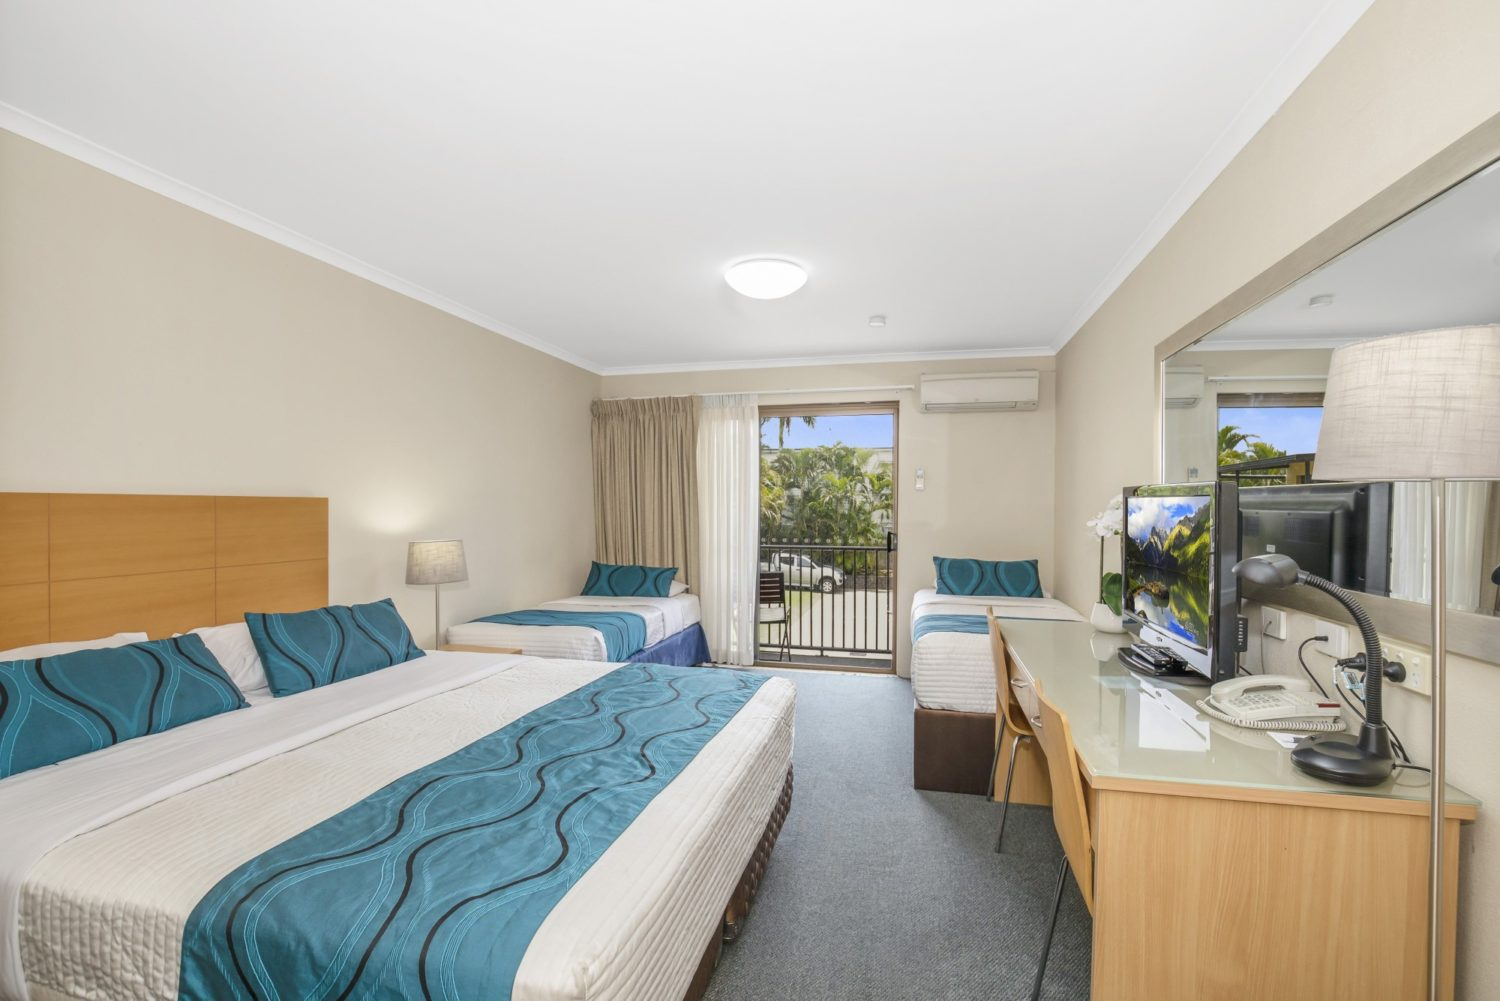 Brisbane-Airport-Motel-85 accommodation (4) (4)